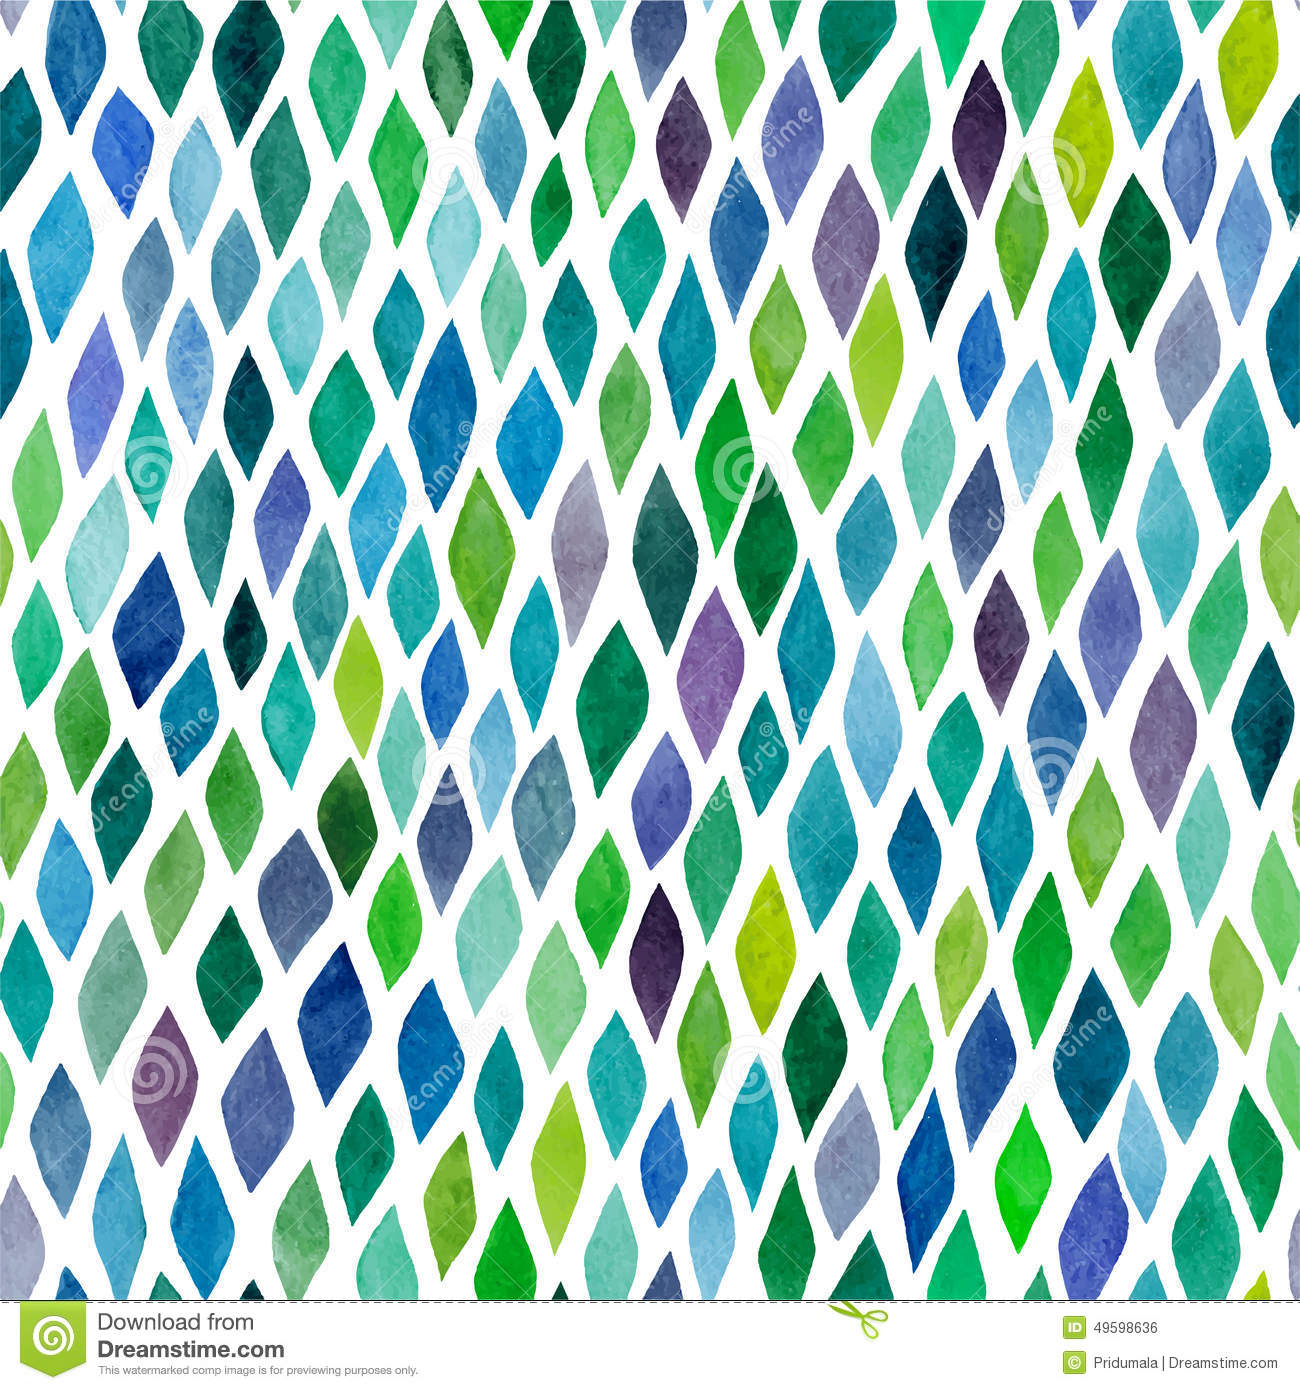 Watercolor seamless abstract hand-drawn pattern, endless modern